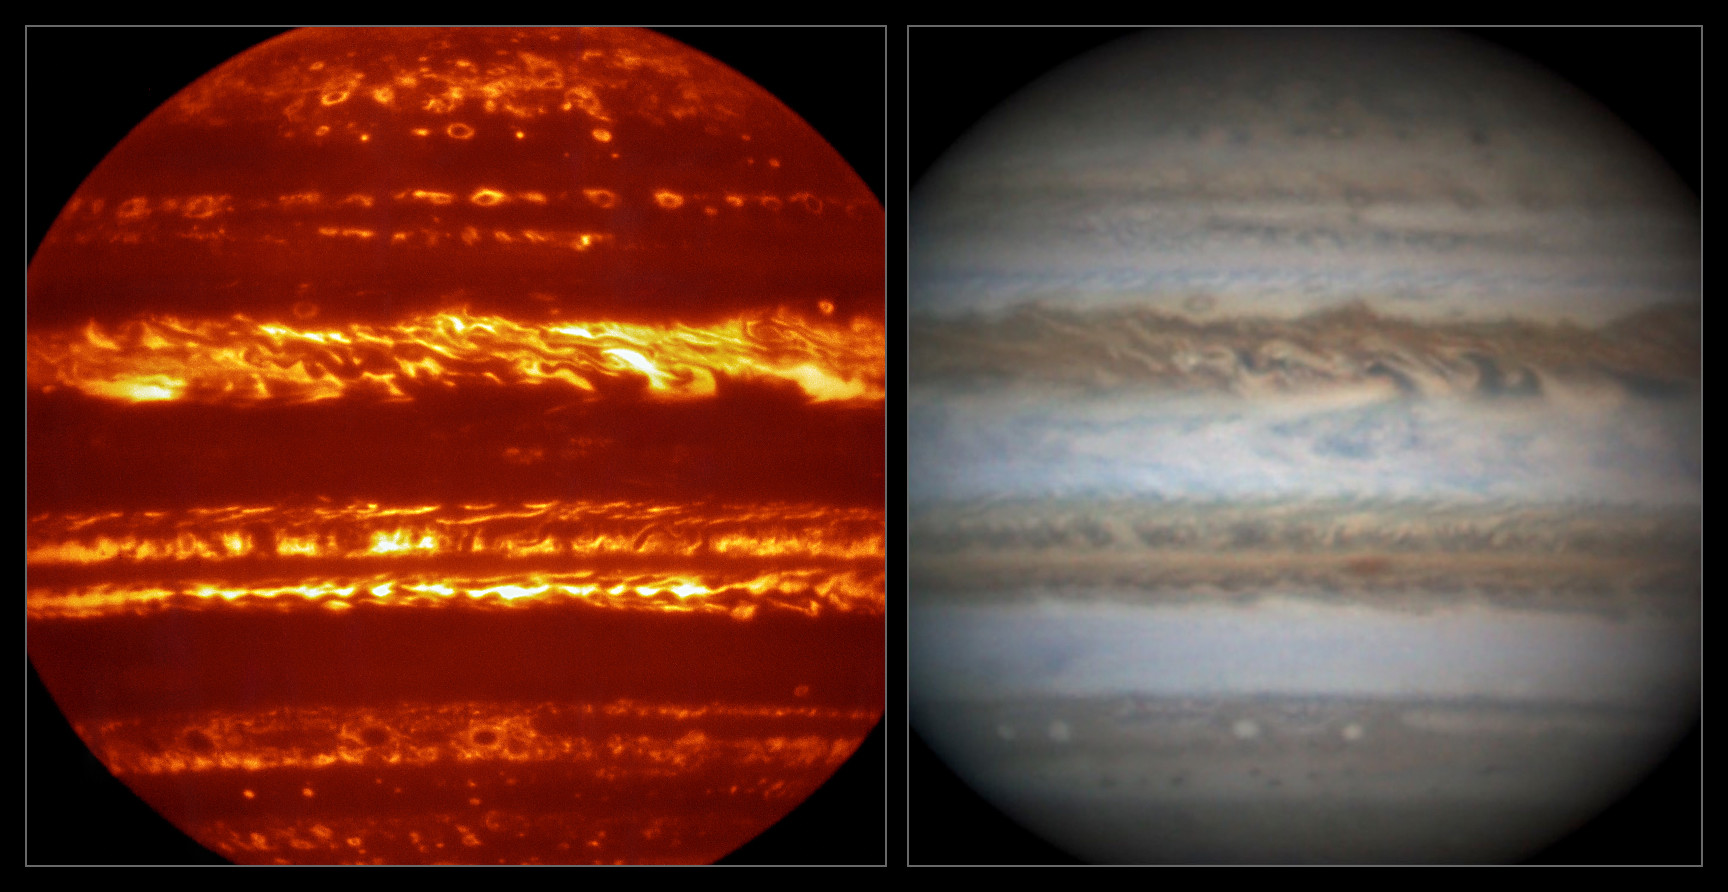 This view compares a lucky imaging view of Jupiter from VISIR (left) at infrared wavelengths with a very sharp amateur image in visible light from about the same time (right). Image credit: ESO/L. Fletcher/Damian Peach.